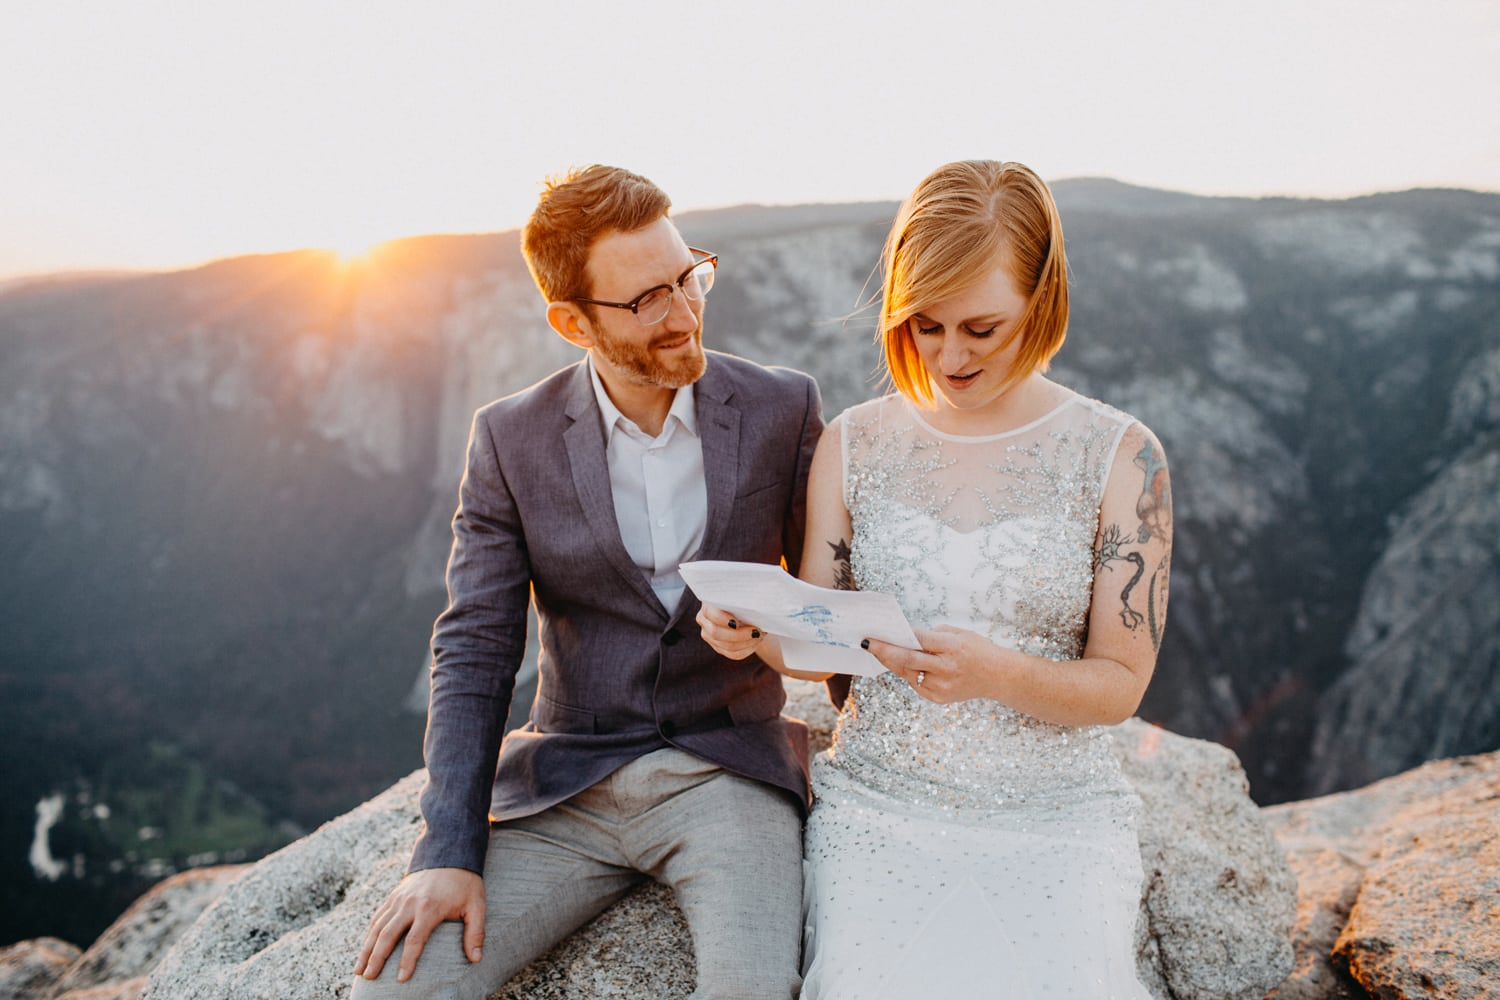 Anjali and Ben exchanging vows at sunset at Taft Point for their Yosemite Elopement